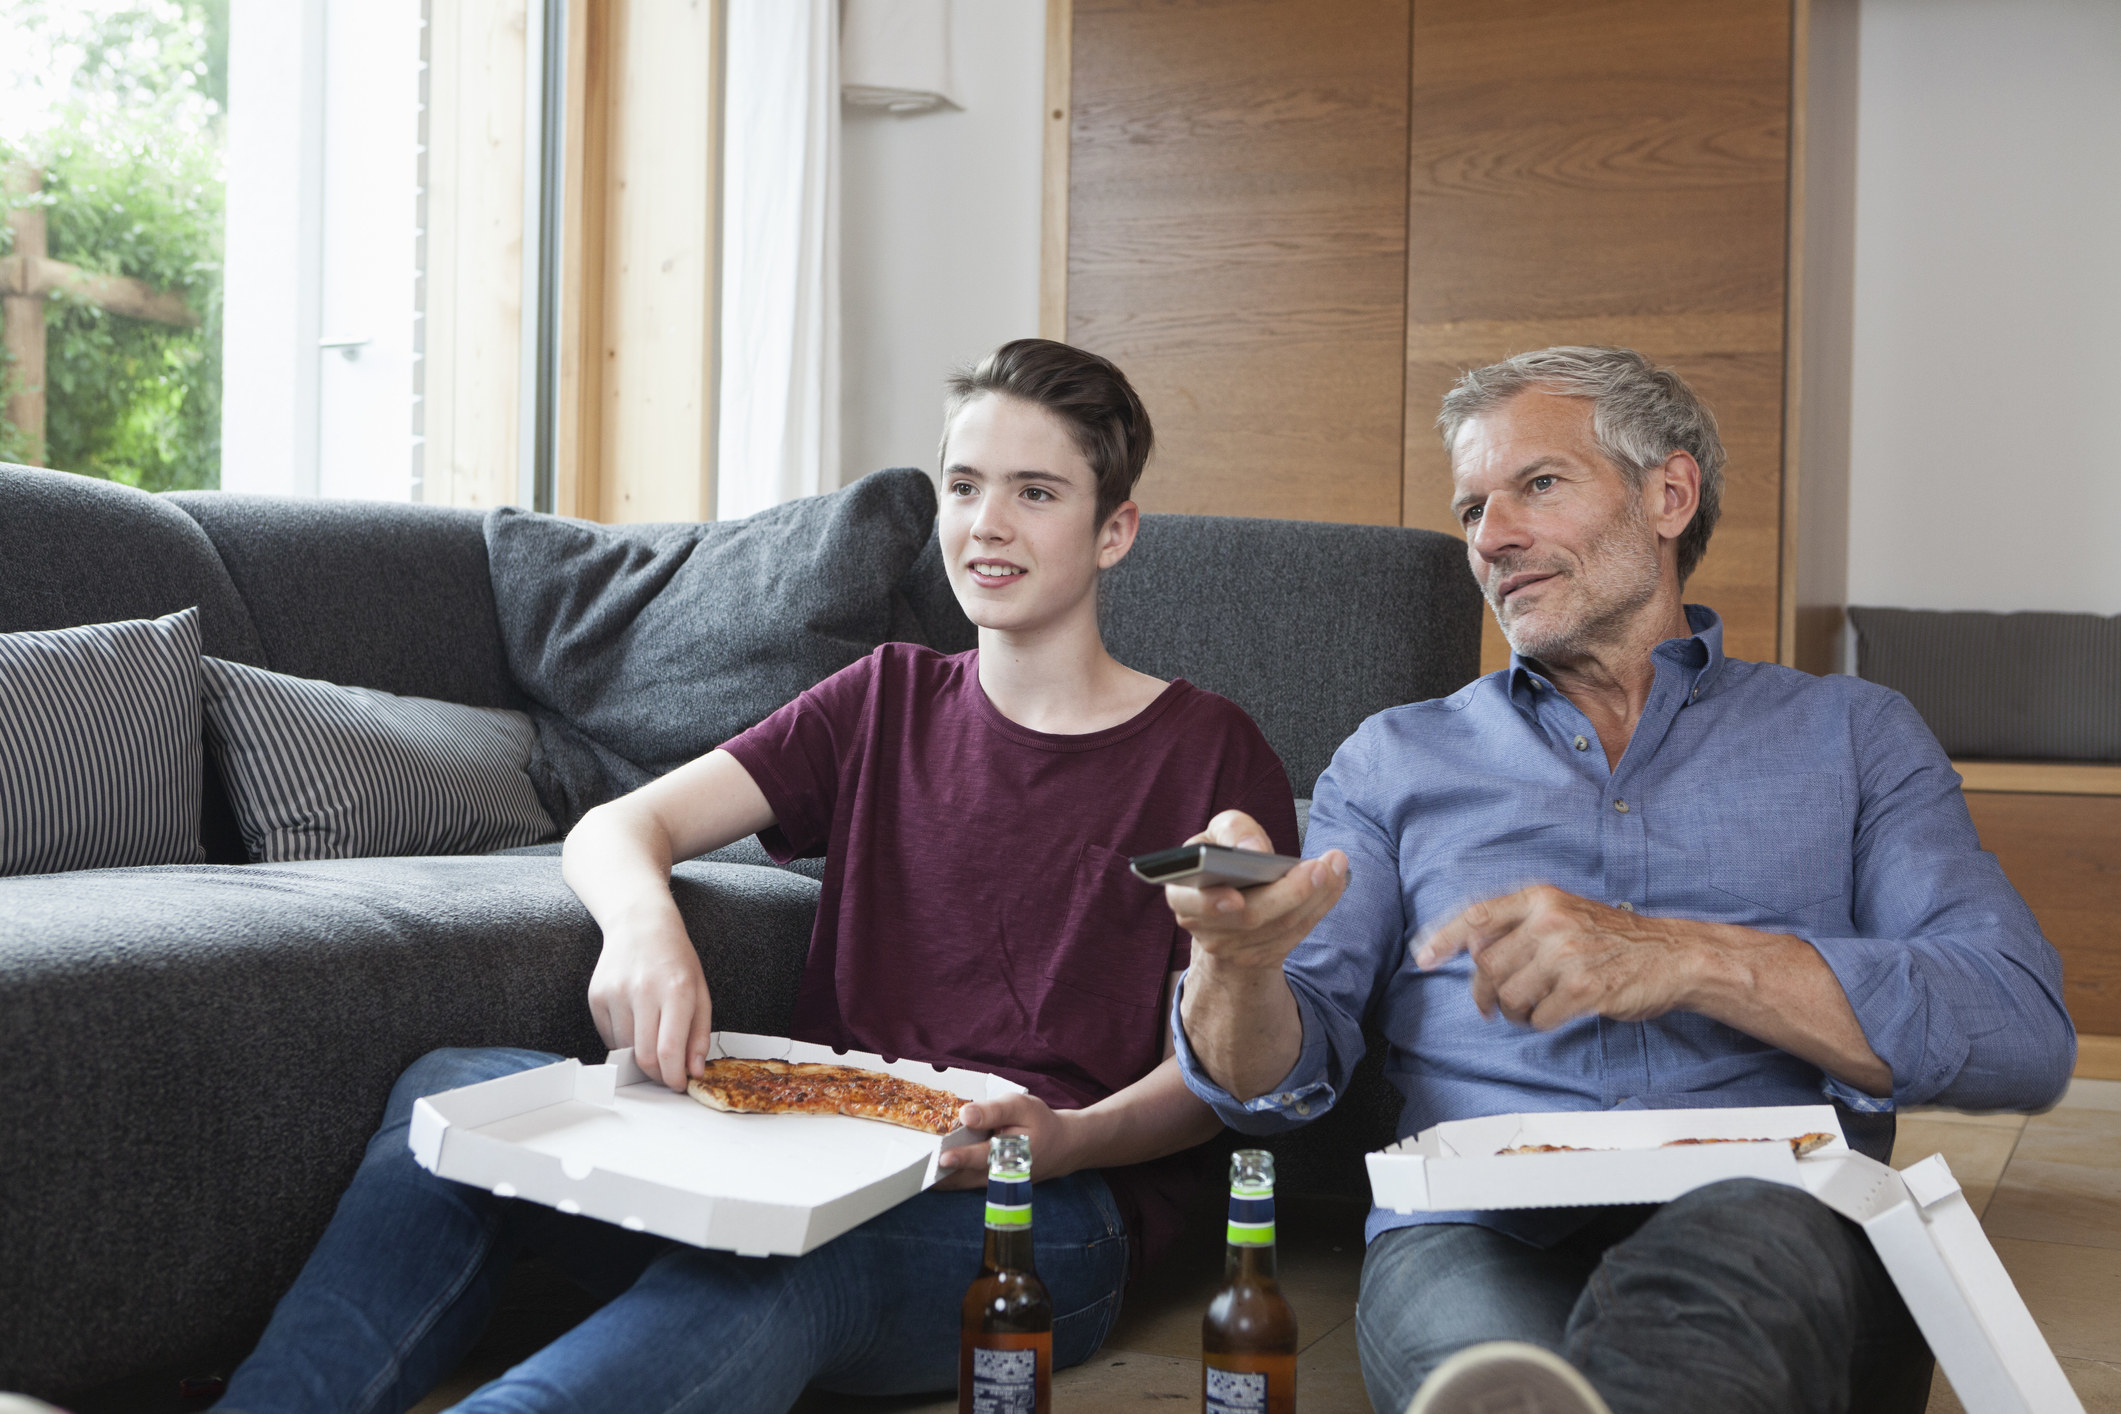 A young white man and an older white man eating pizza and watching tv as they sit on the floor